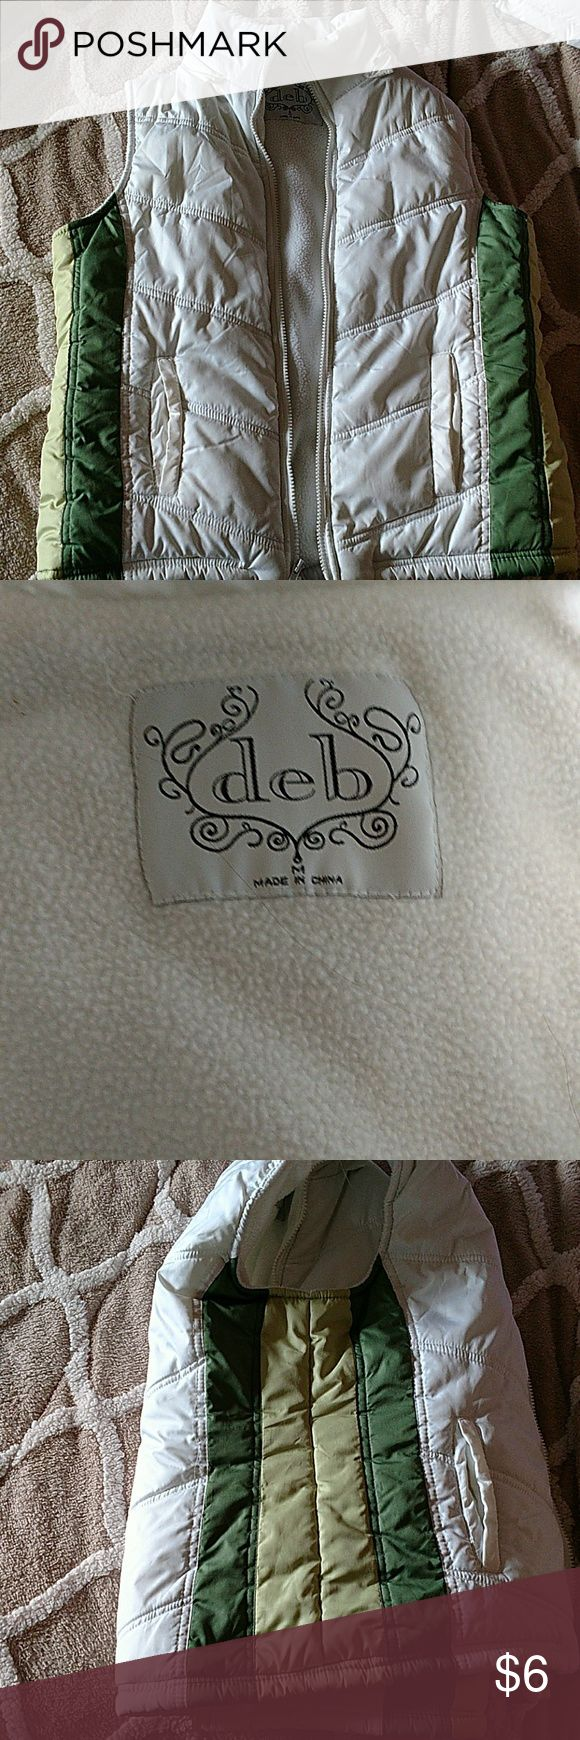 Deb shop vest Women's/Juniors size medium vest from the Deb shop, good condition, looks like a little yellowing near the right pocket also a spot on the left side, please see pics.  There was a hood, I don't have it. Deb Jackets & Coats Vests